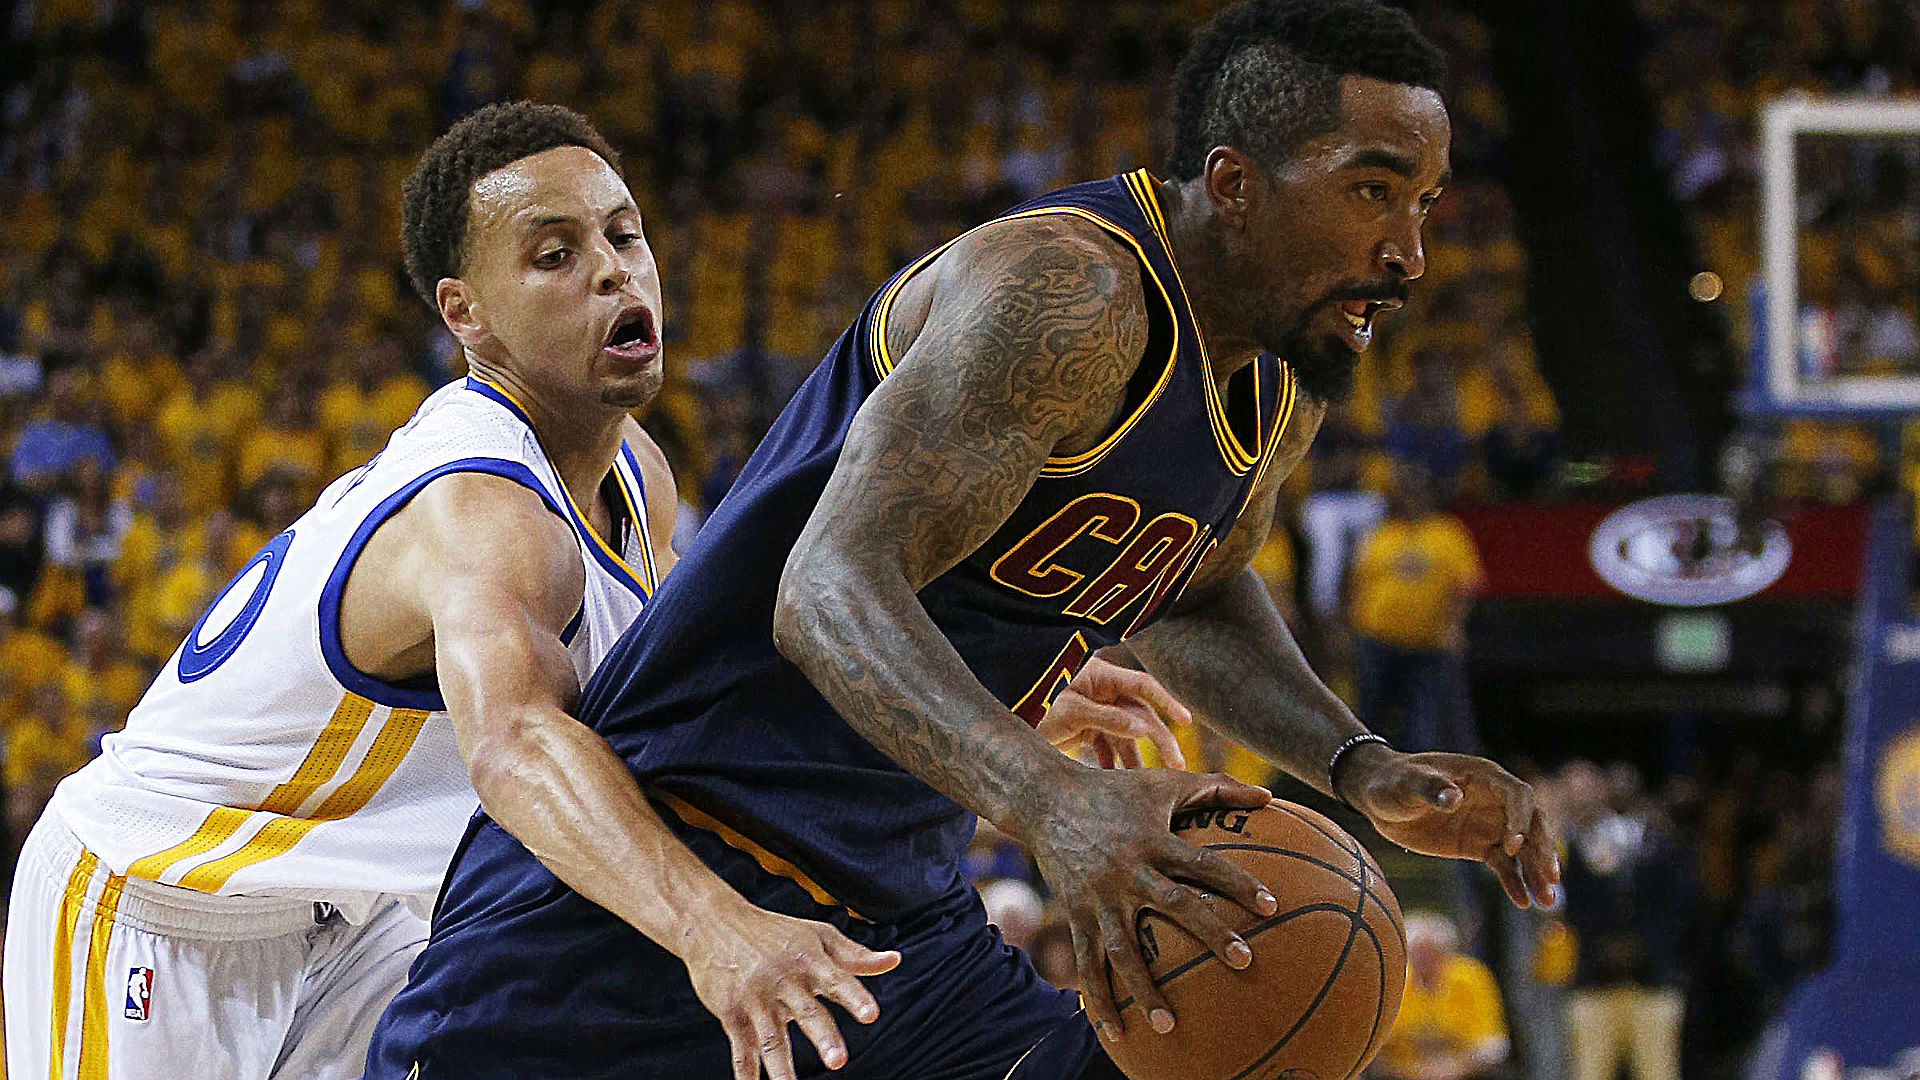 Warriors vs. Cavaliers Game 6 betting line and pick – Expect big effort from Cleveland